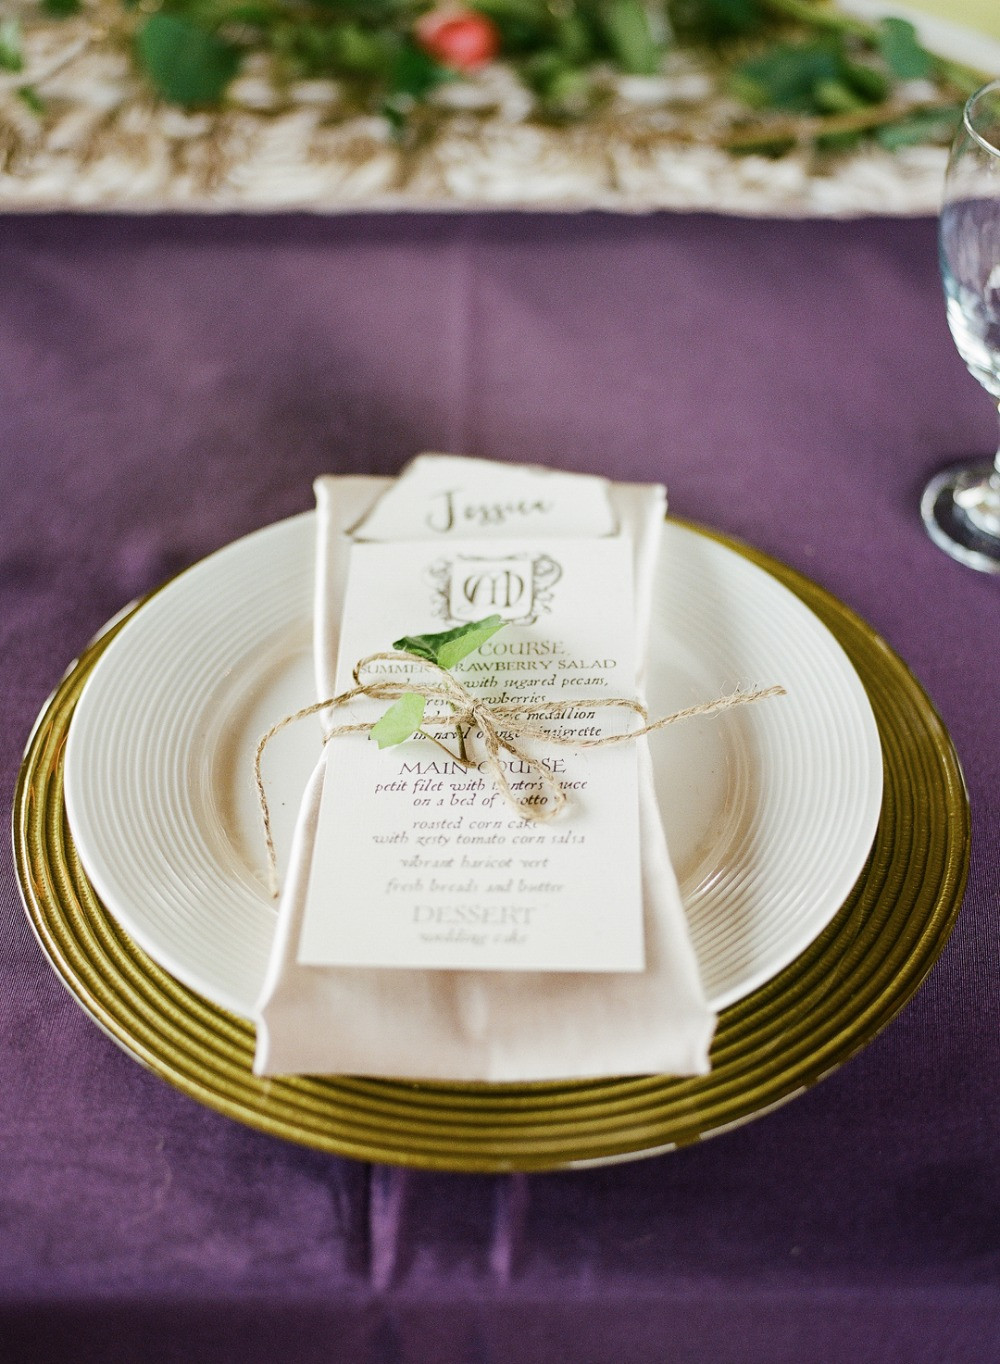 Harry Potter themed place setting